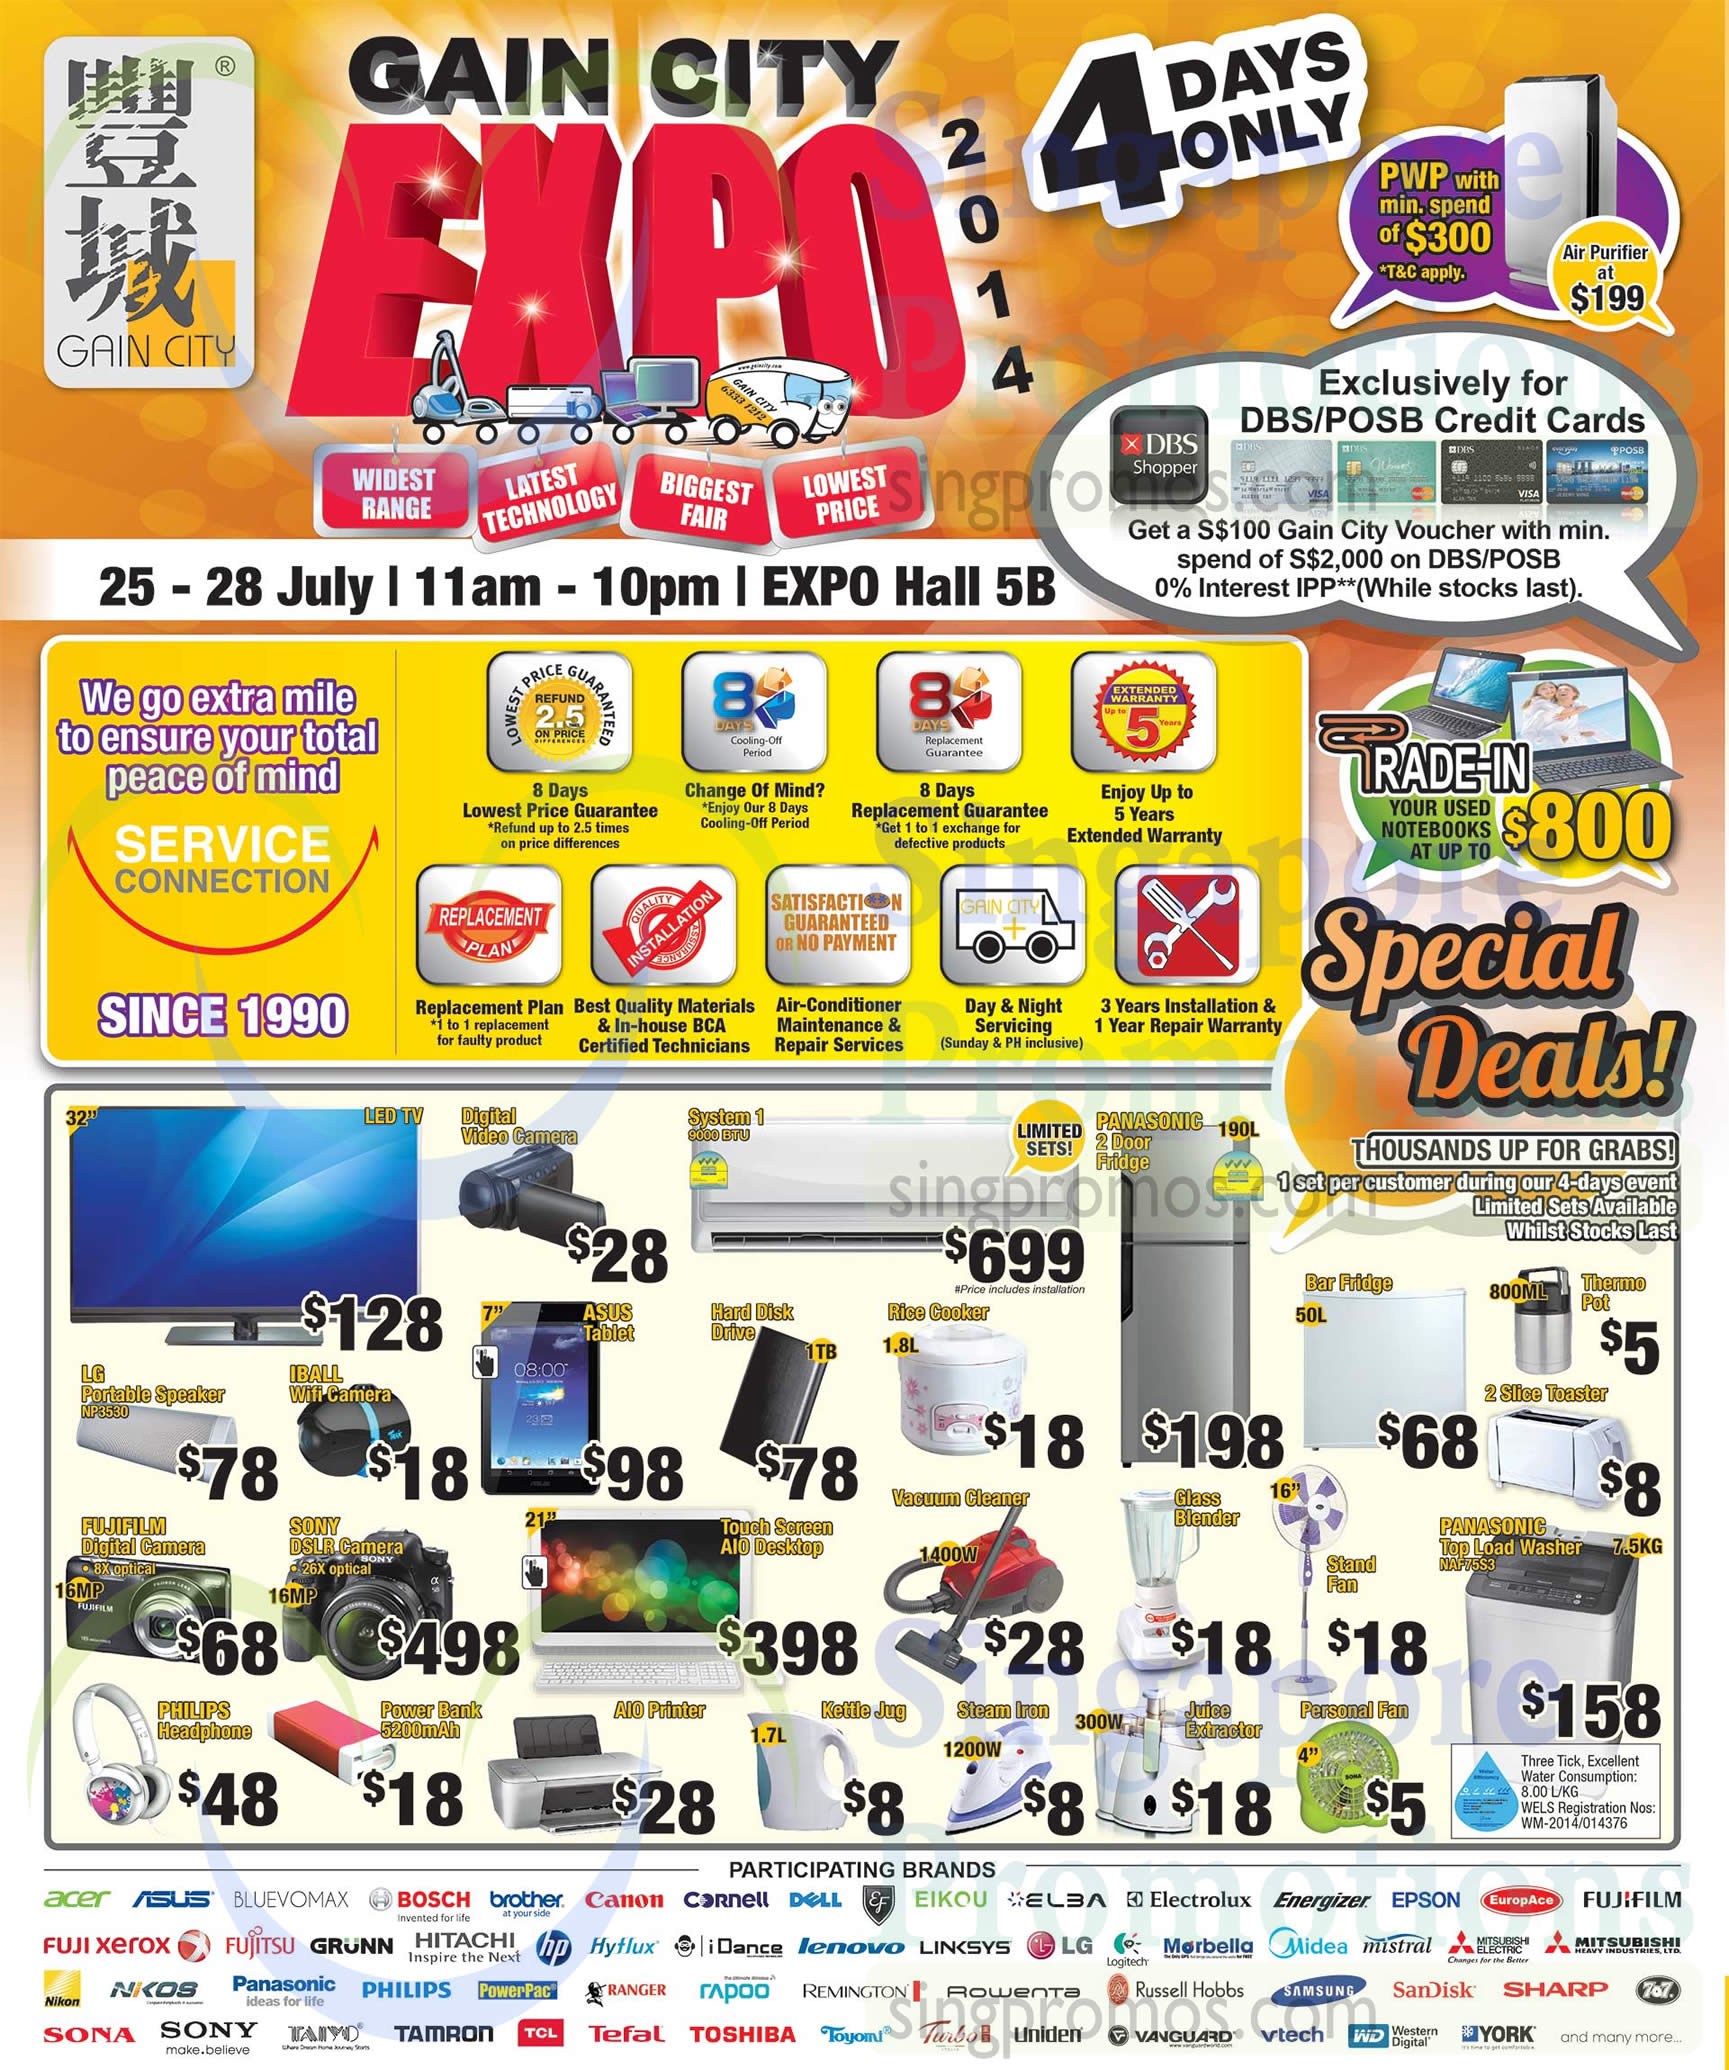 Kitchen Appliances Singapore 25 Jul Special Deals Notebooks Trade In Participating Brands